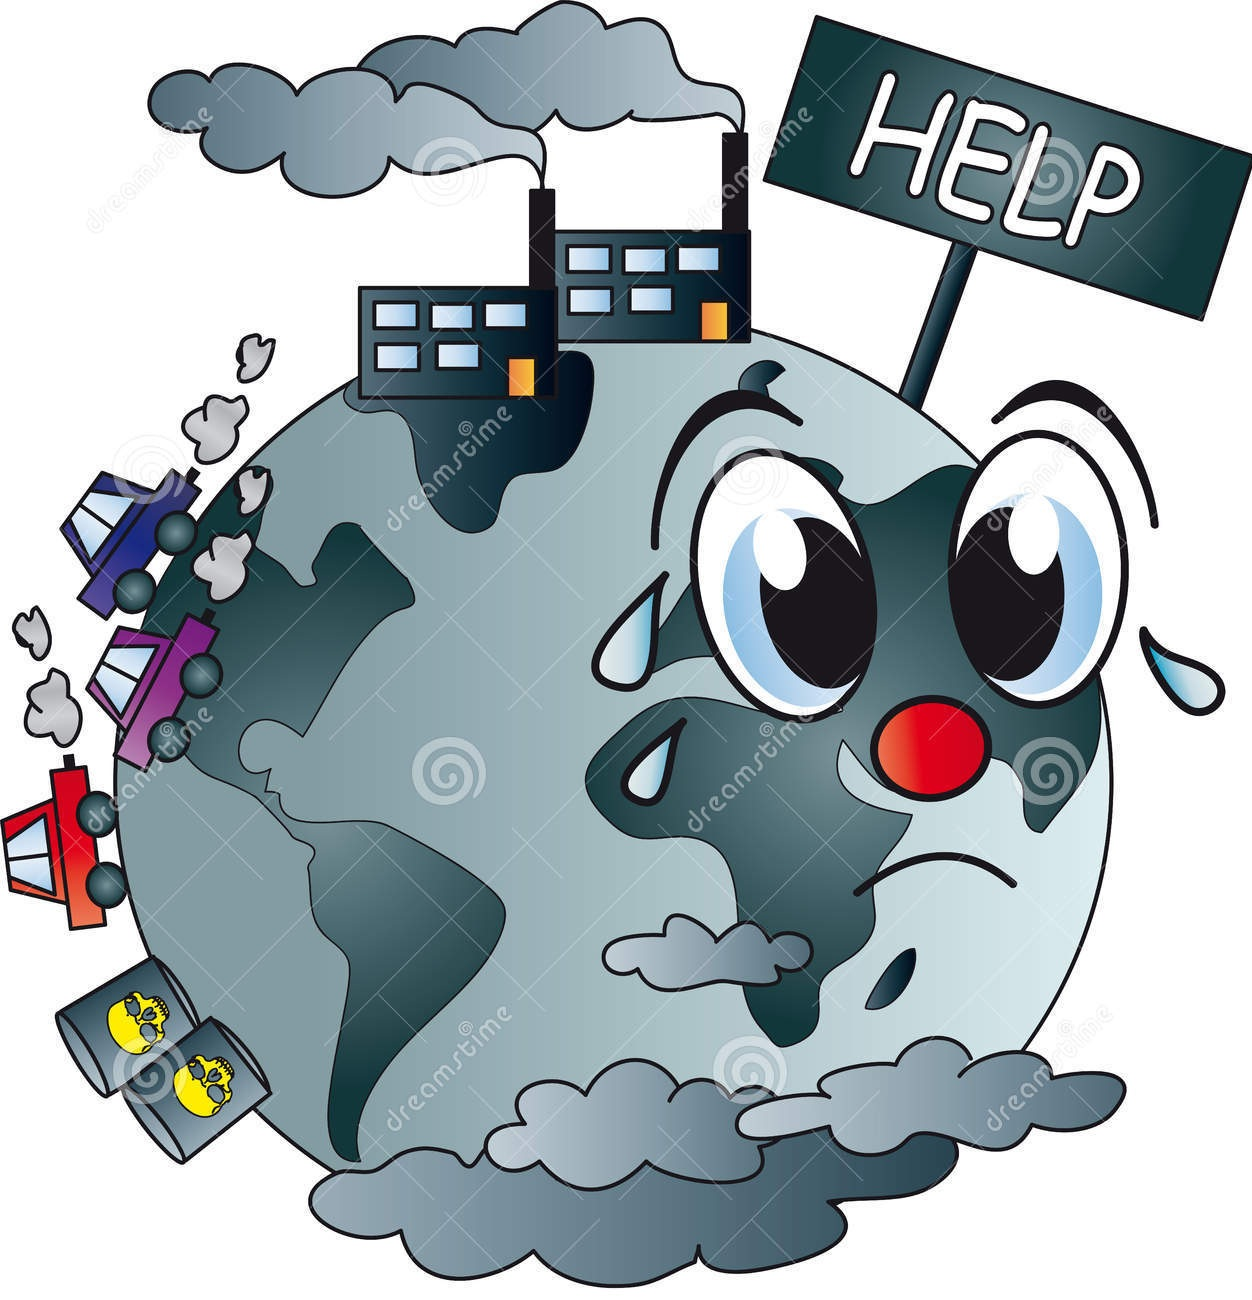 Planet clipart social science Natural around 2016 The 1